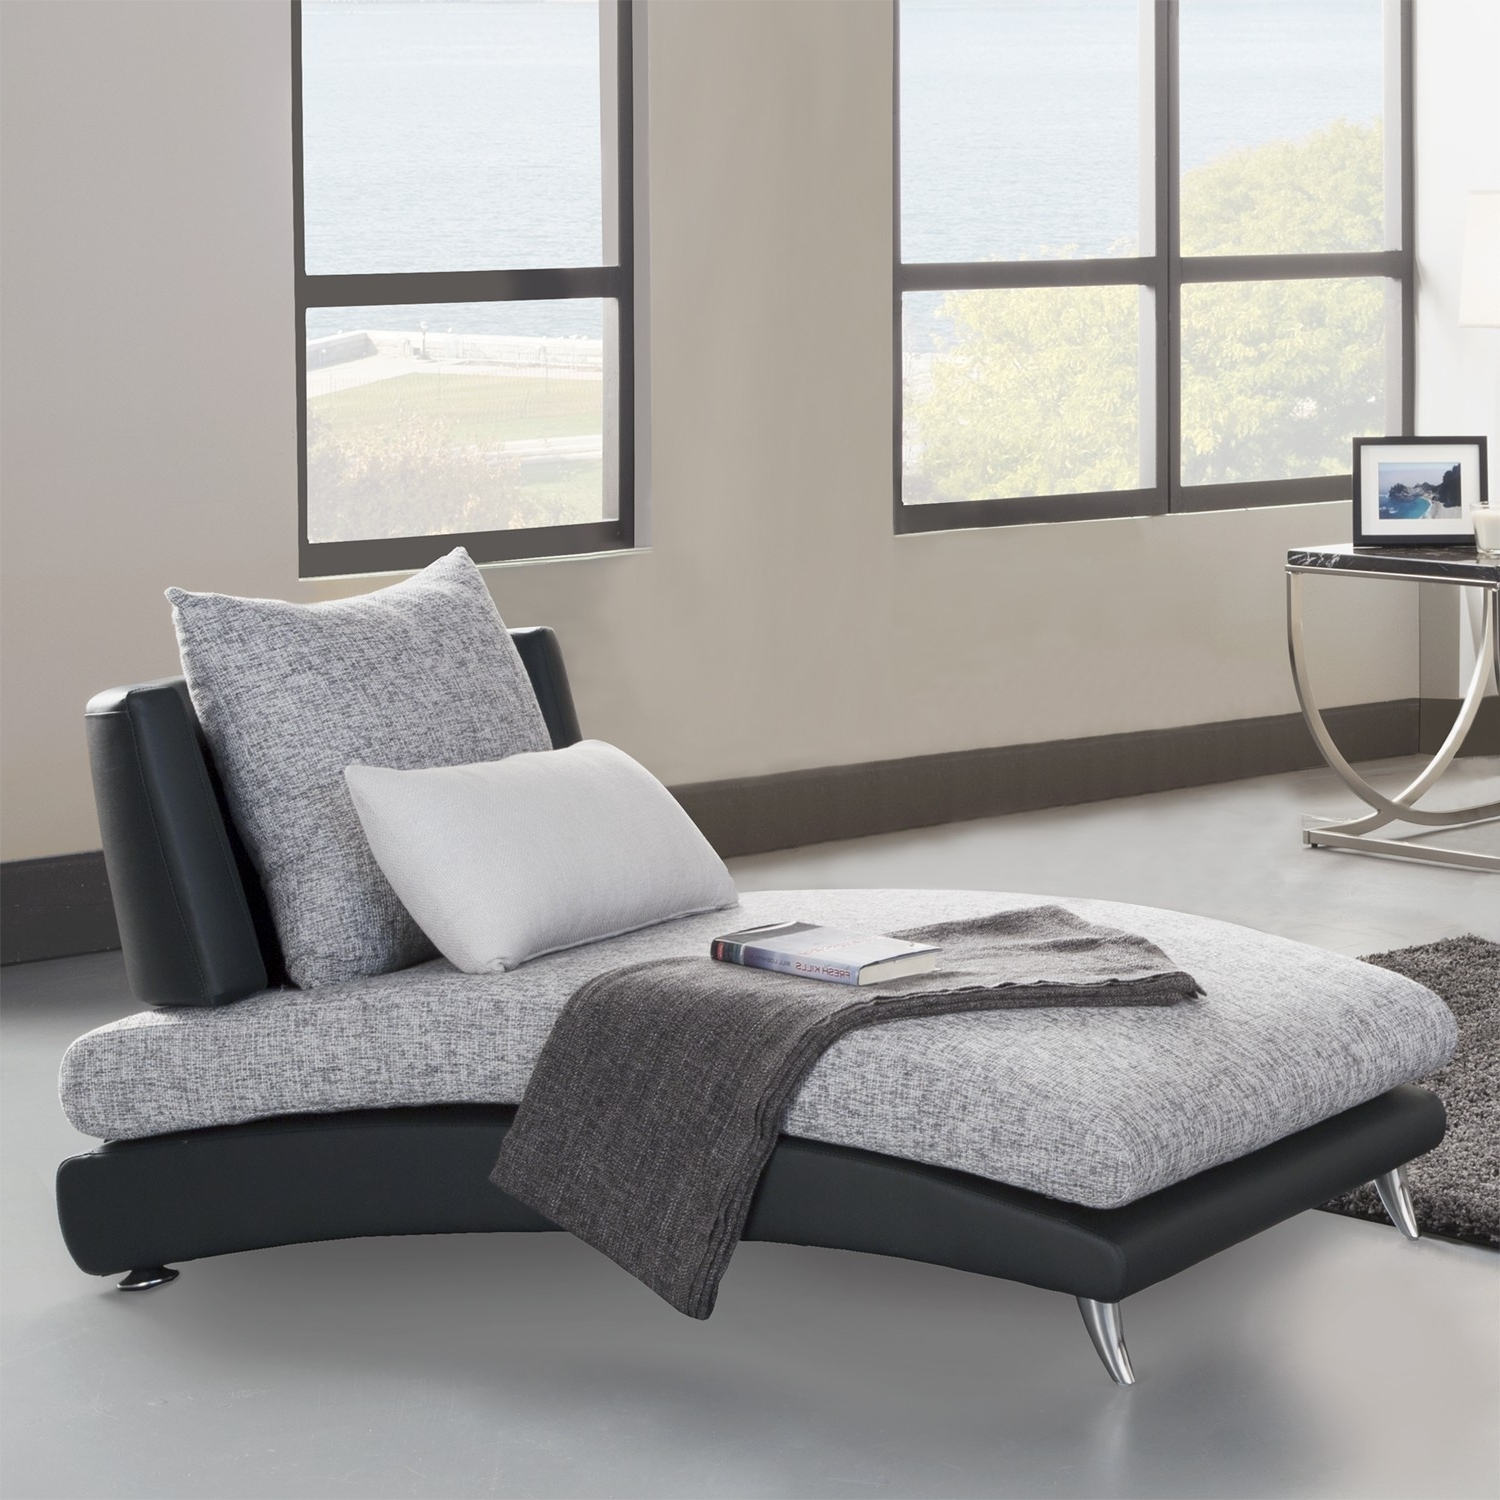 Lounge Chair : Bedroom Chaise Lounge Chairs For Best Attractive Regarding Most Up To Date Bedroom Chaise Lounge Chairs (View 9 of 15)